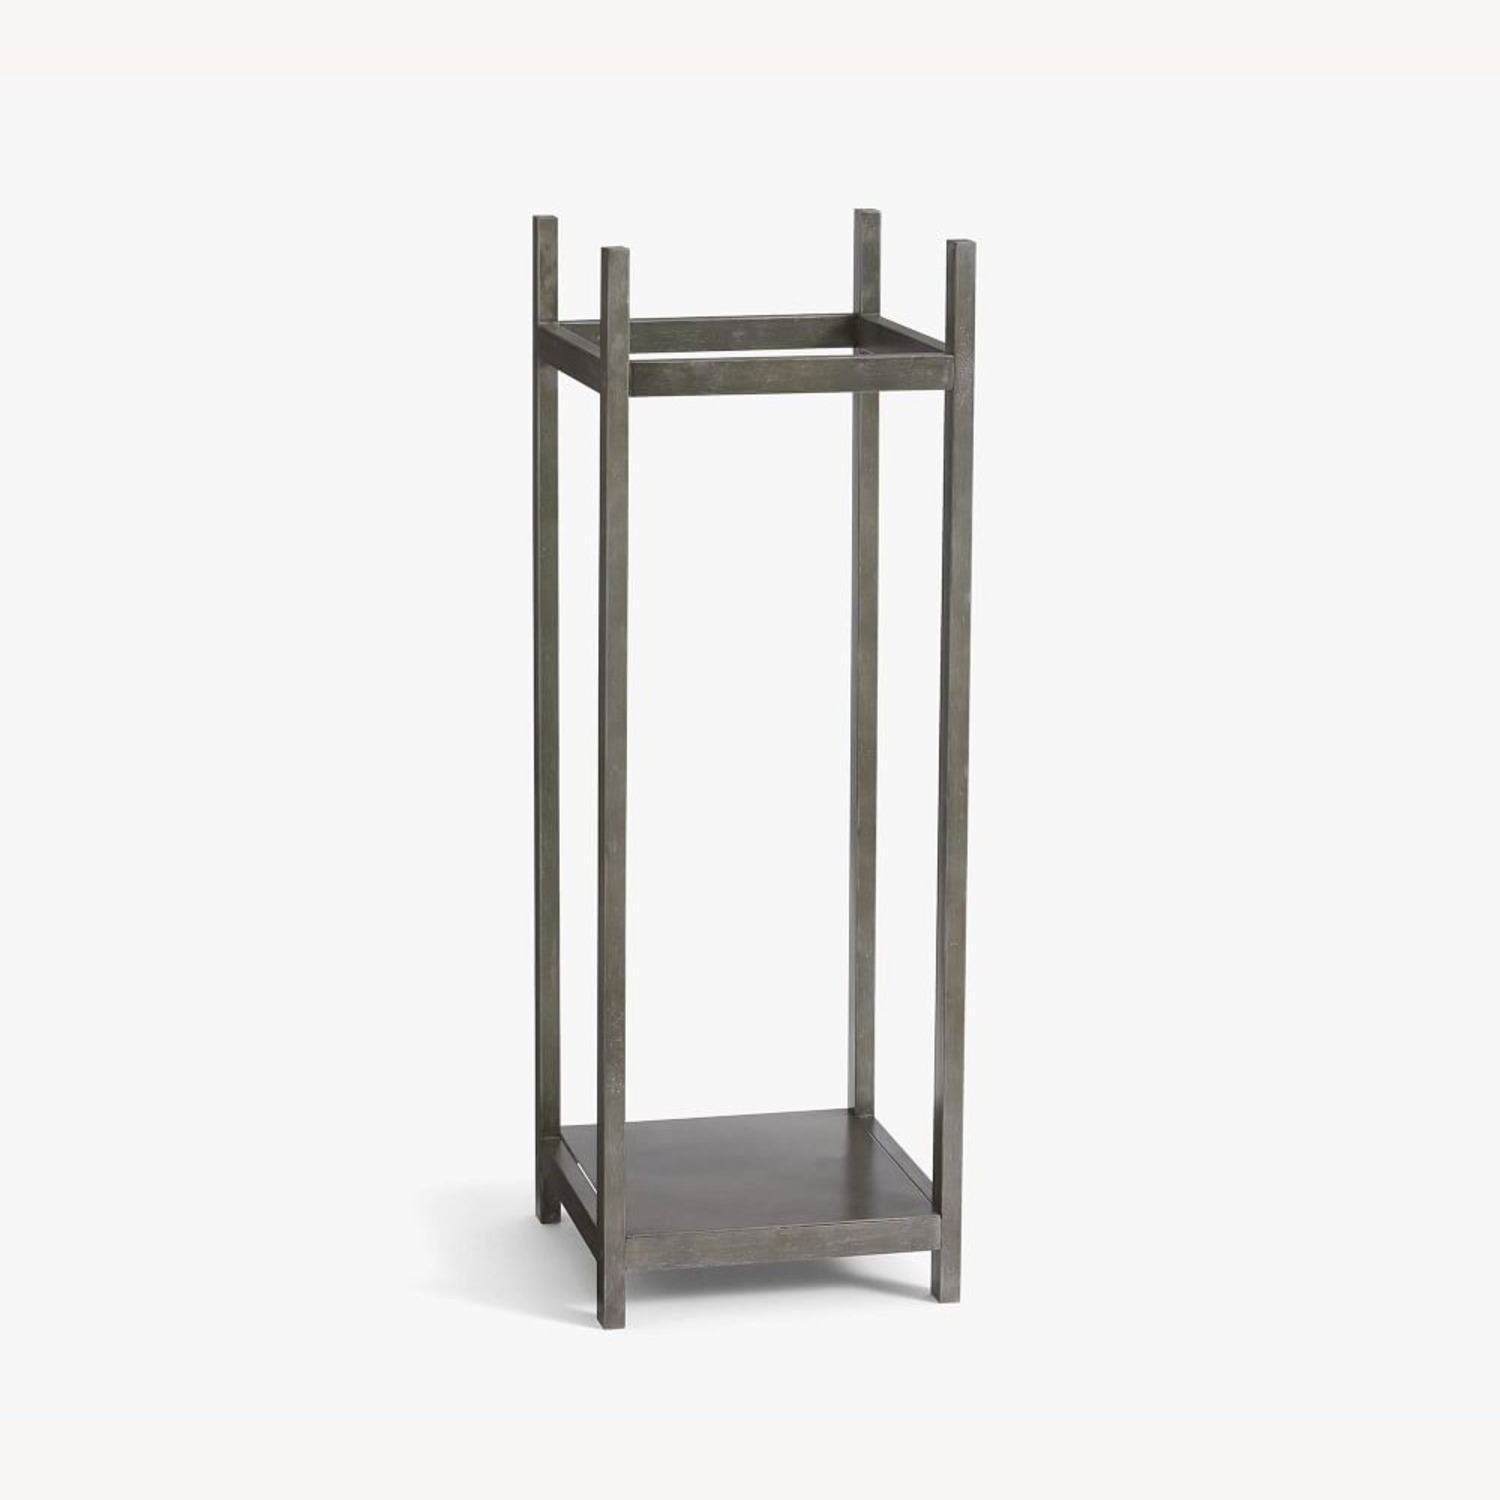 Pottery Barn Industrial Fireplace Log Holder Tower - image-1